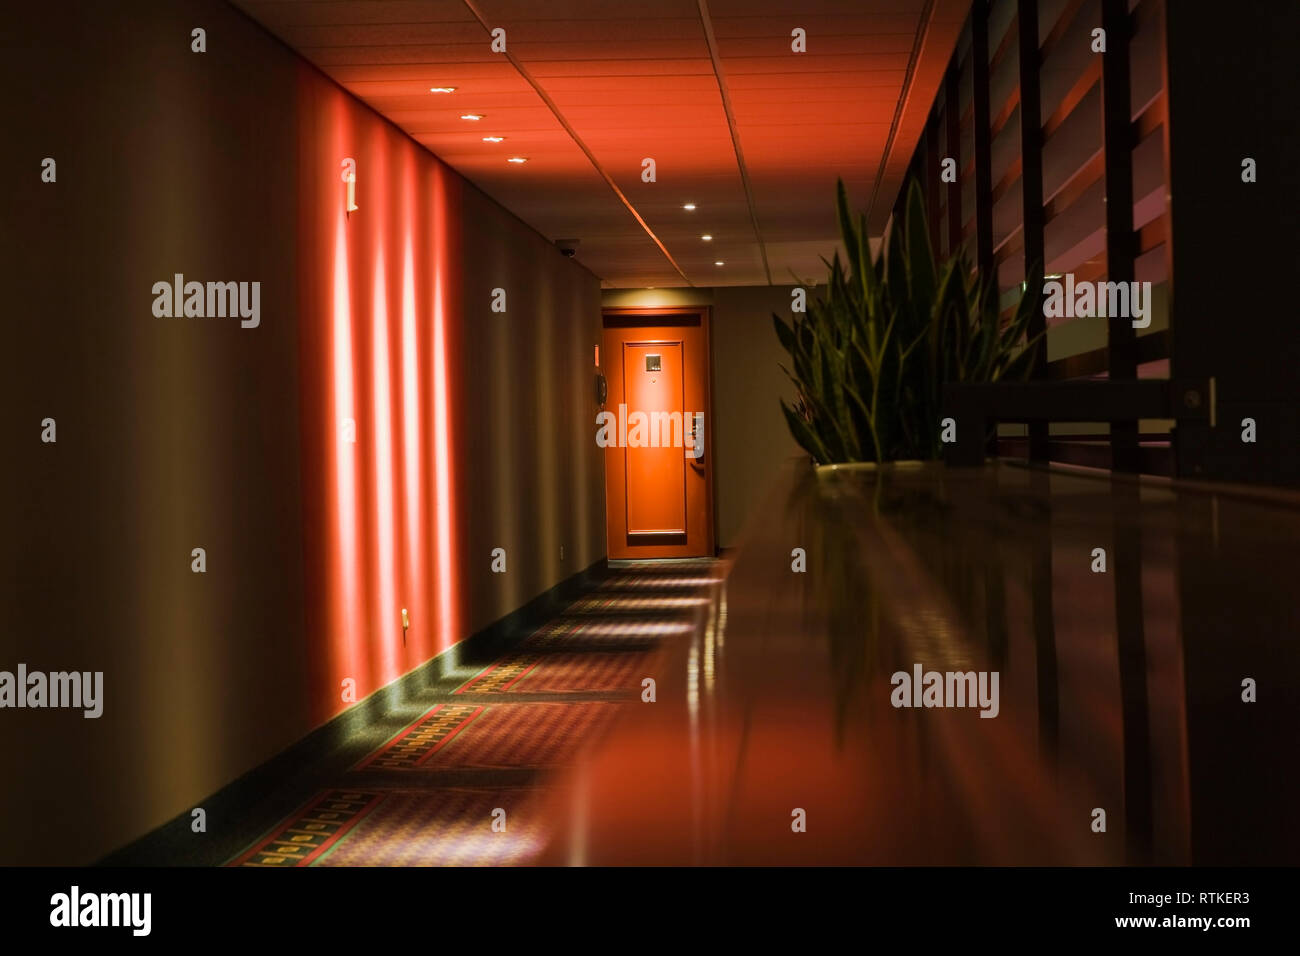 Illuminated hallway and hotel room door in the inner courtyard of the Sofitel hotel, Budapest, Hungary, Eastern Europe - Stock Image